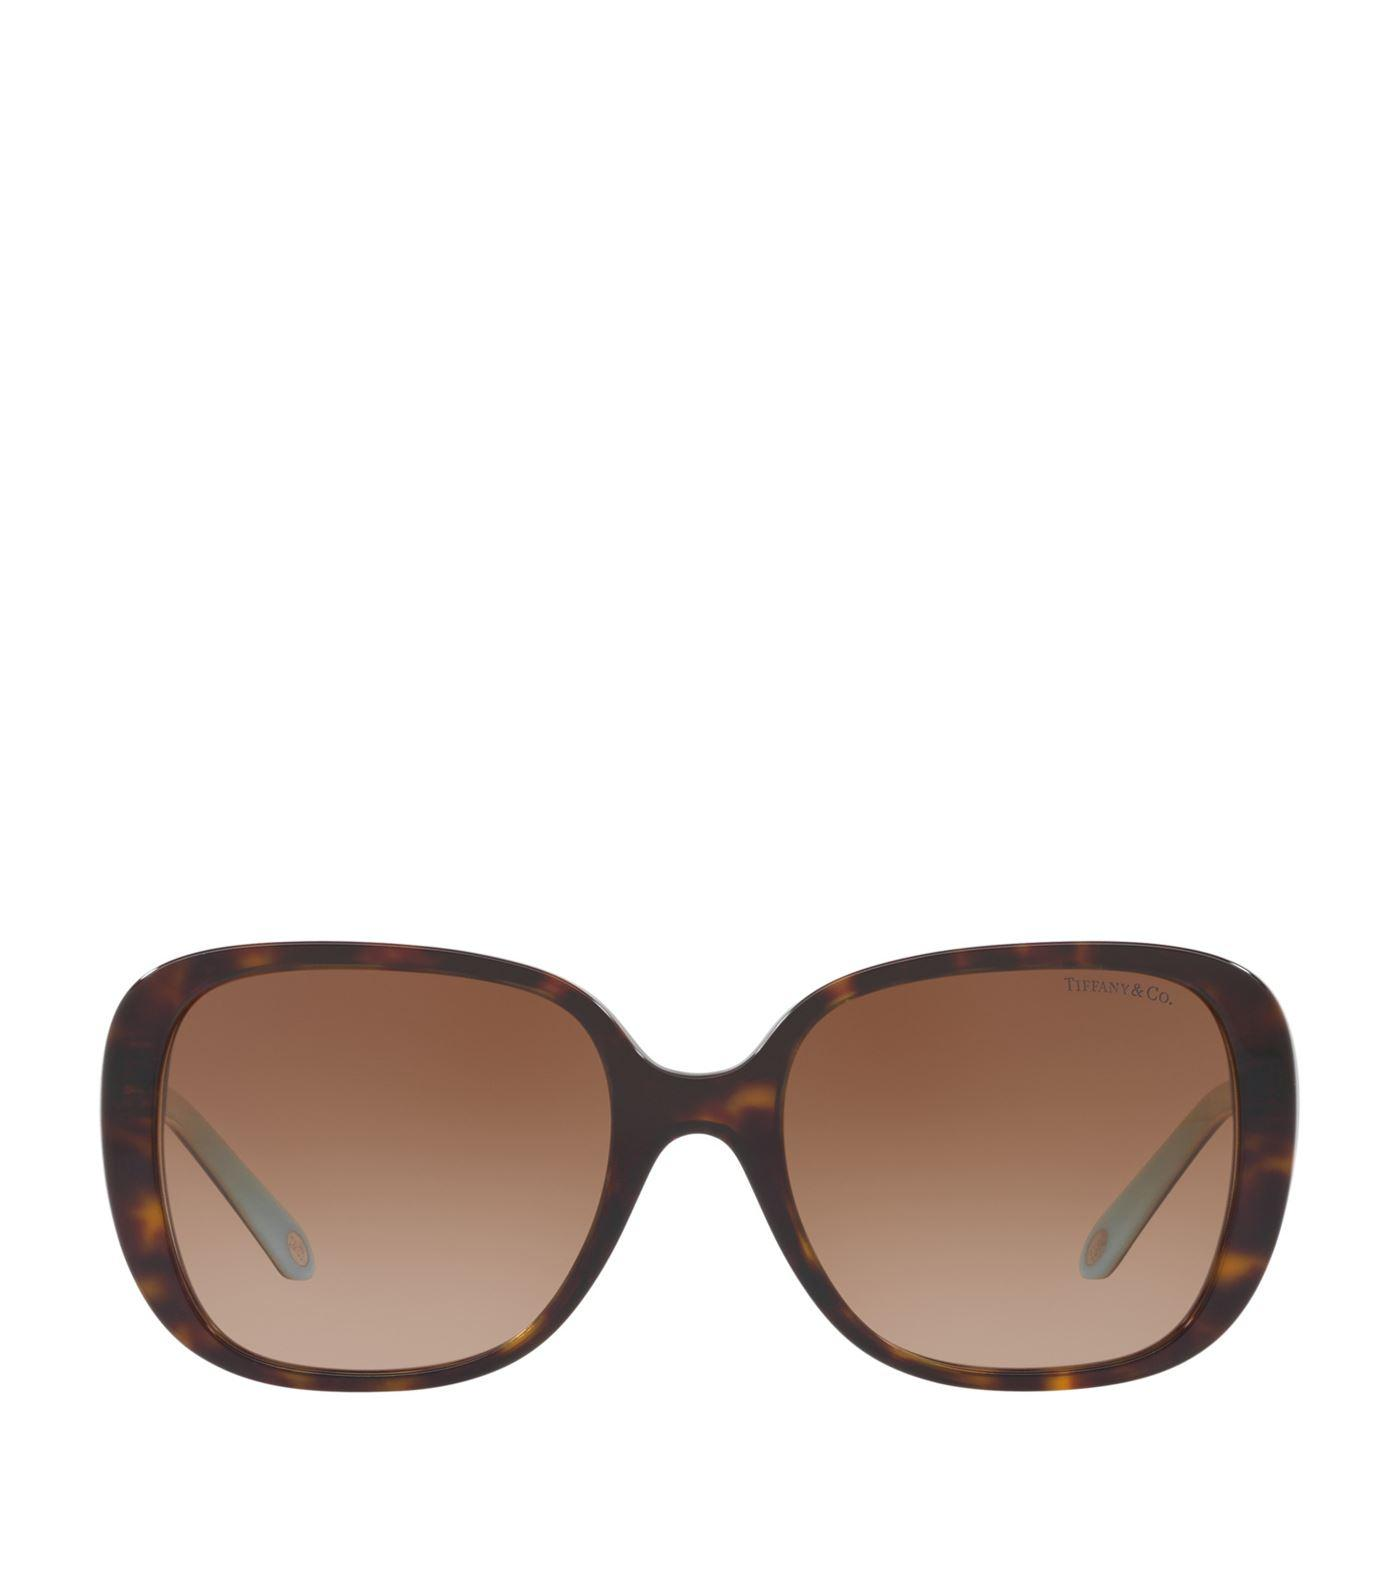 8a286939d29 Tiffany   Co 54Mm Gradient Sunglasses - Dark Havana In Brown